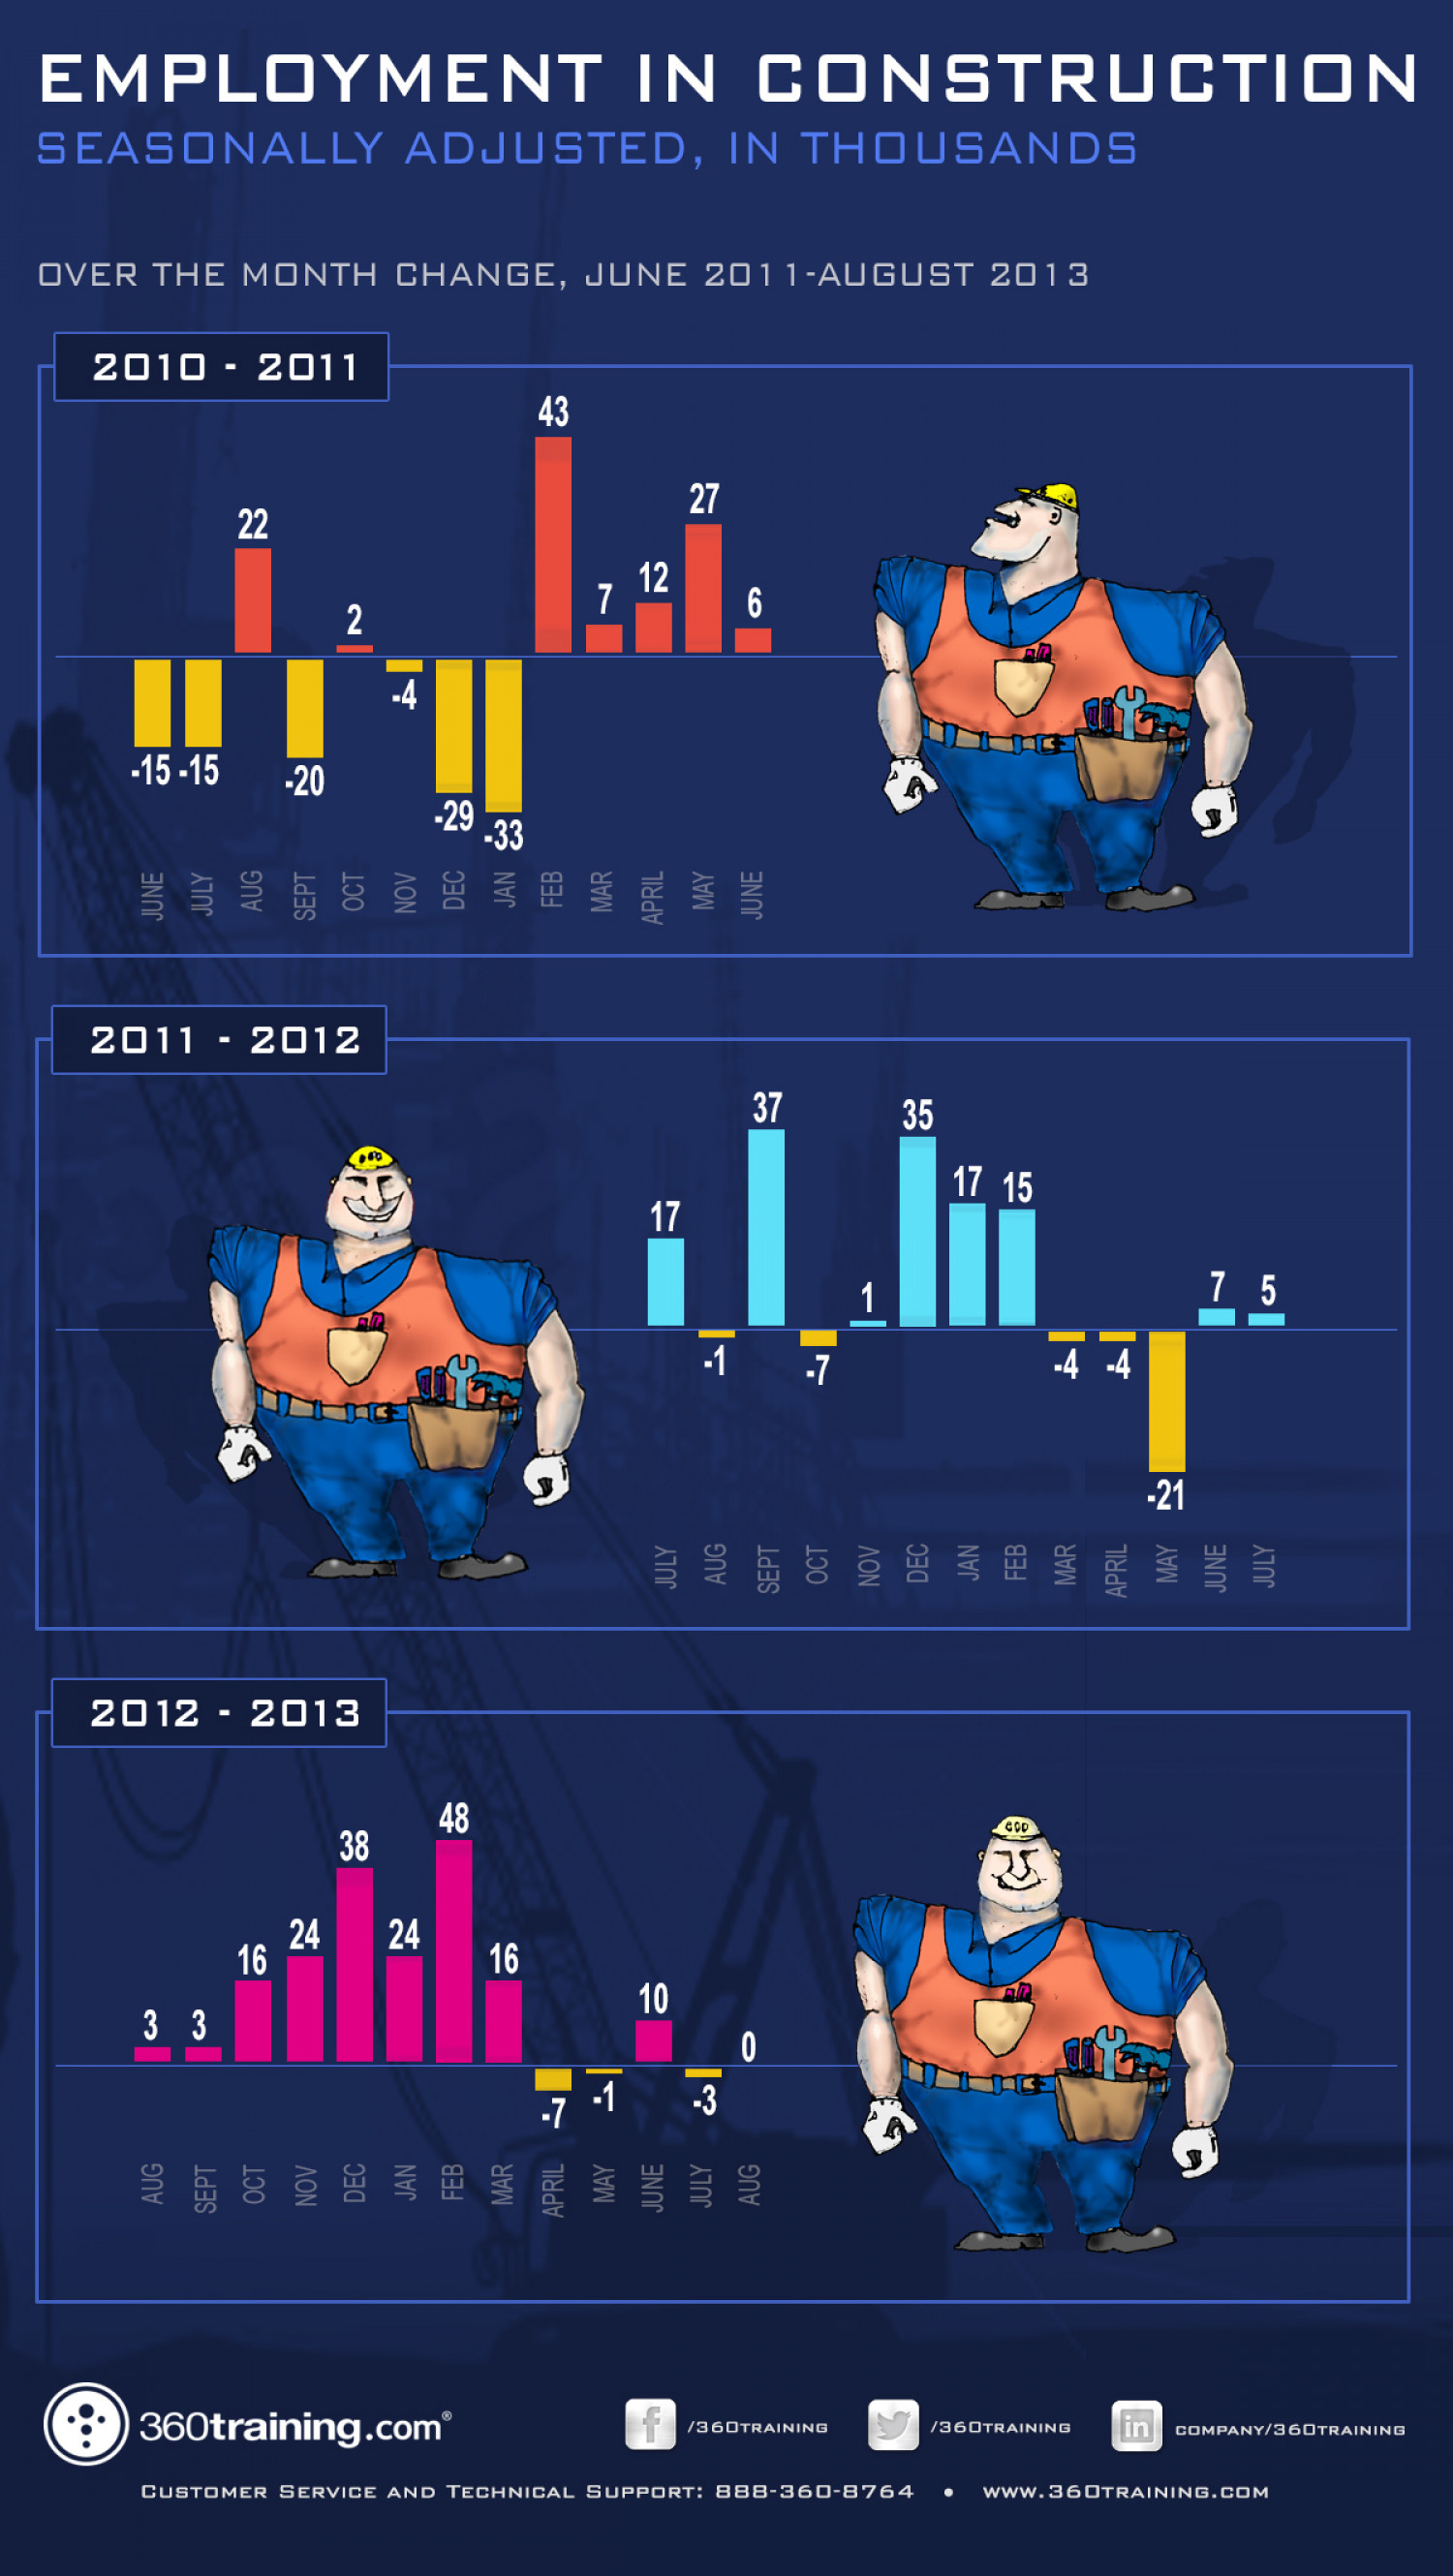 Employment in Construction Infographic